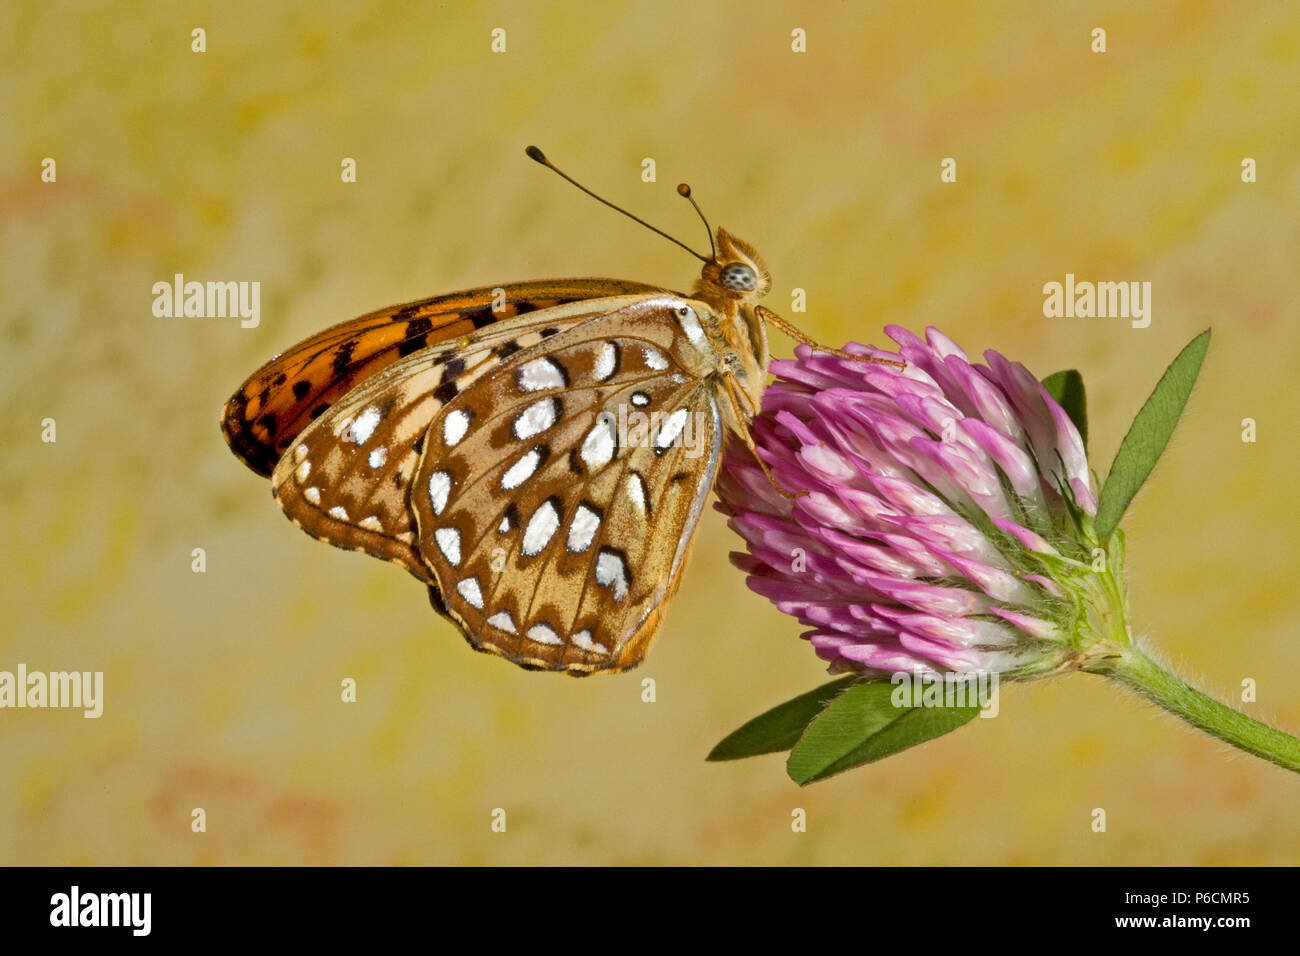 Portrait of a callippe fritillary butterfly, Speyeria callippe, on a wildflower in the Metolius basin of central Oregon. - Stock Image